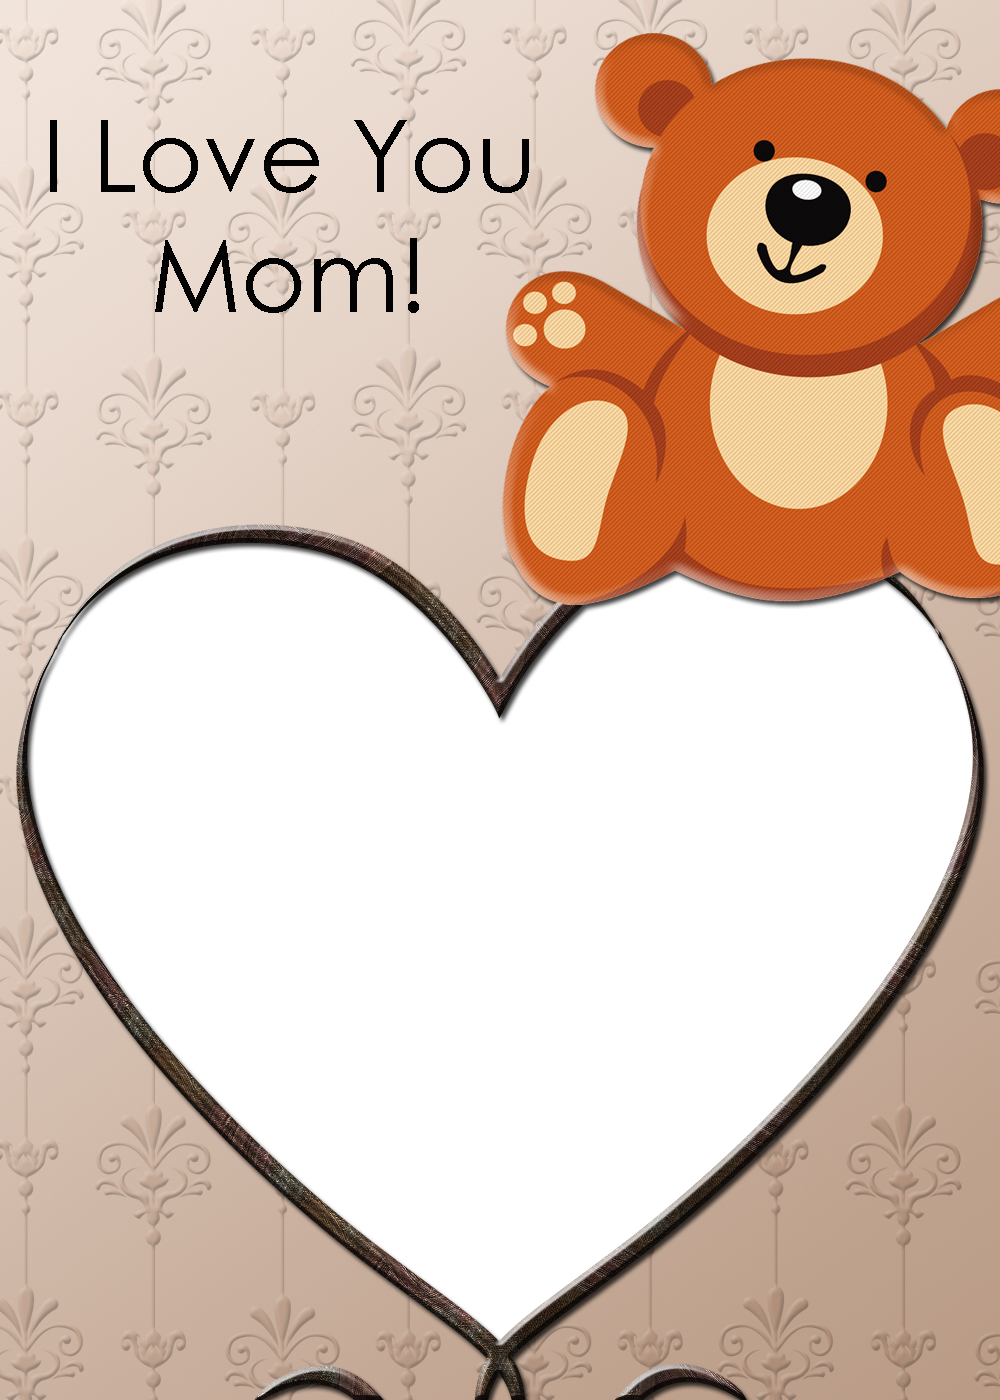 bear mountain single parent personals Discover amazing things and connect with passionate people.